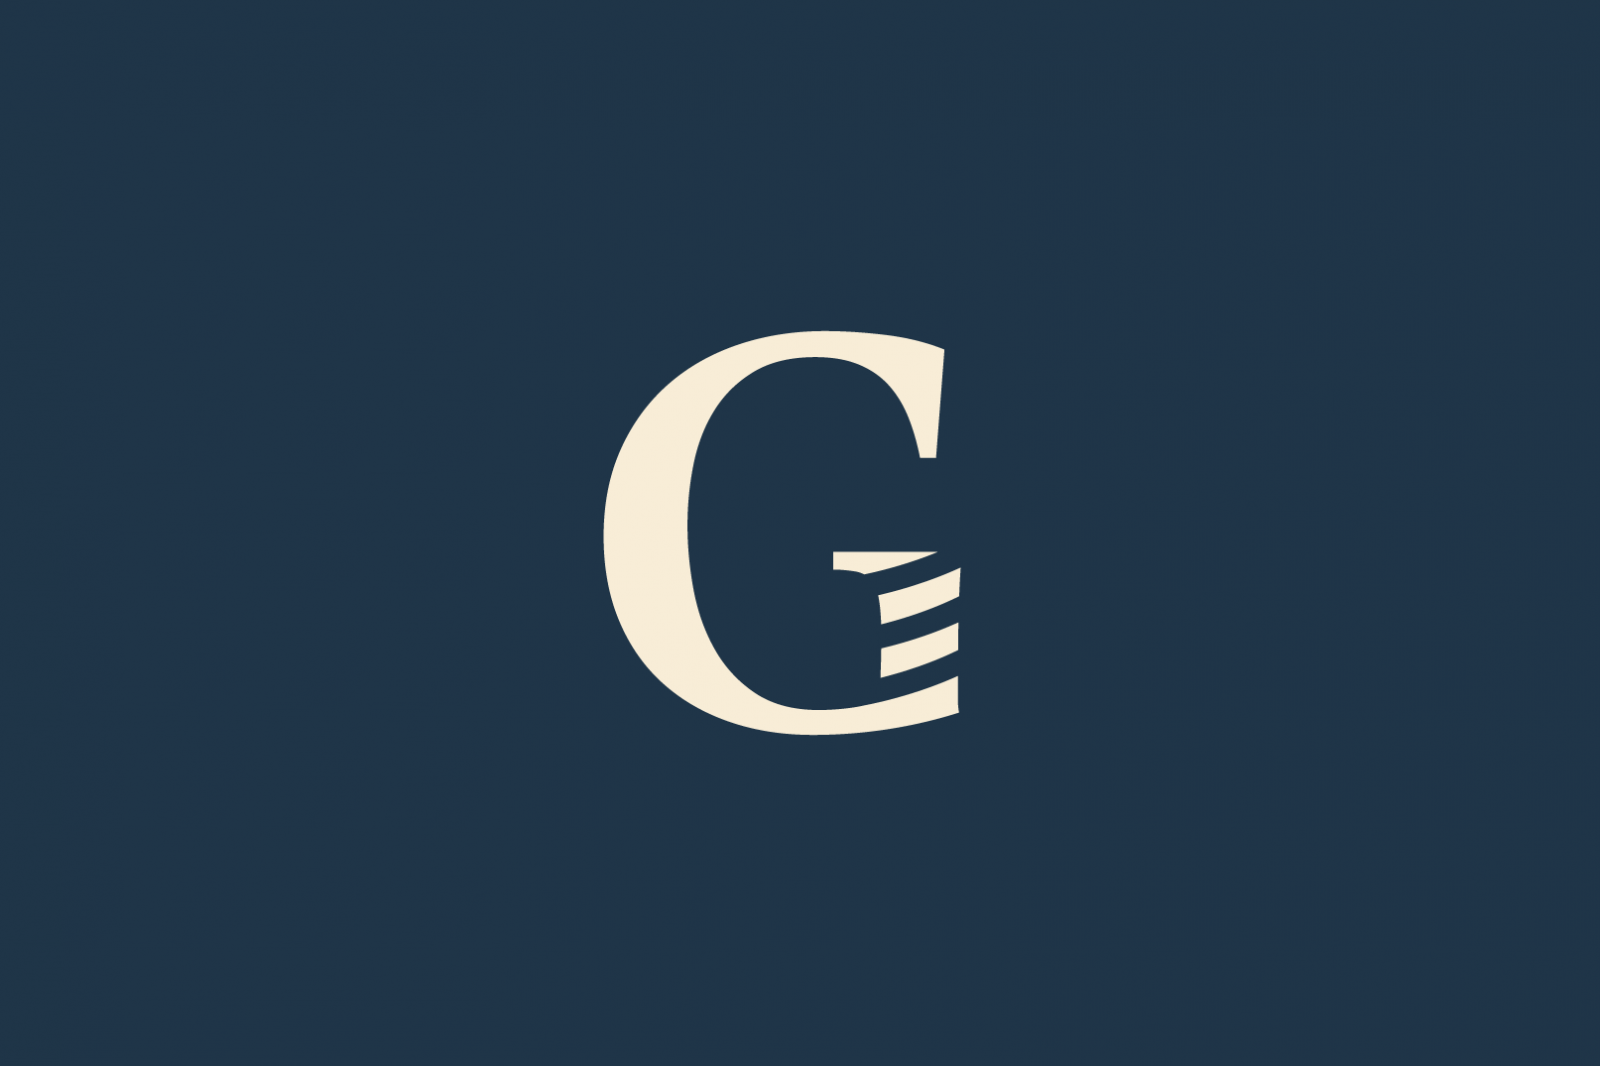 Gershwins-logo-design-agency-graphic-design-canterbury.png